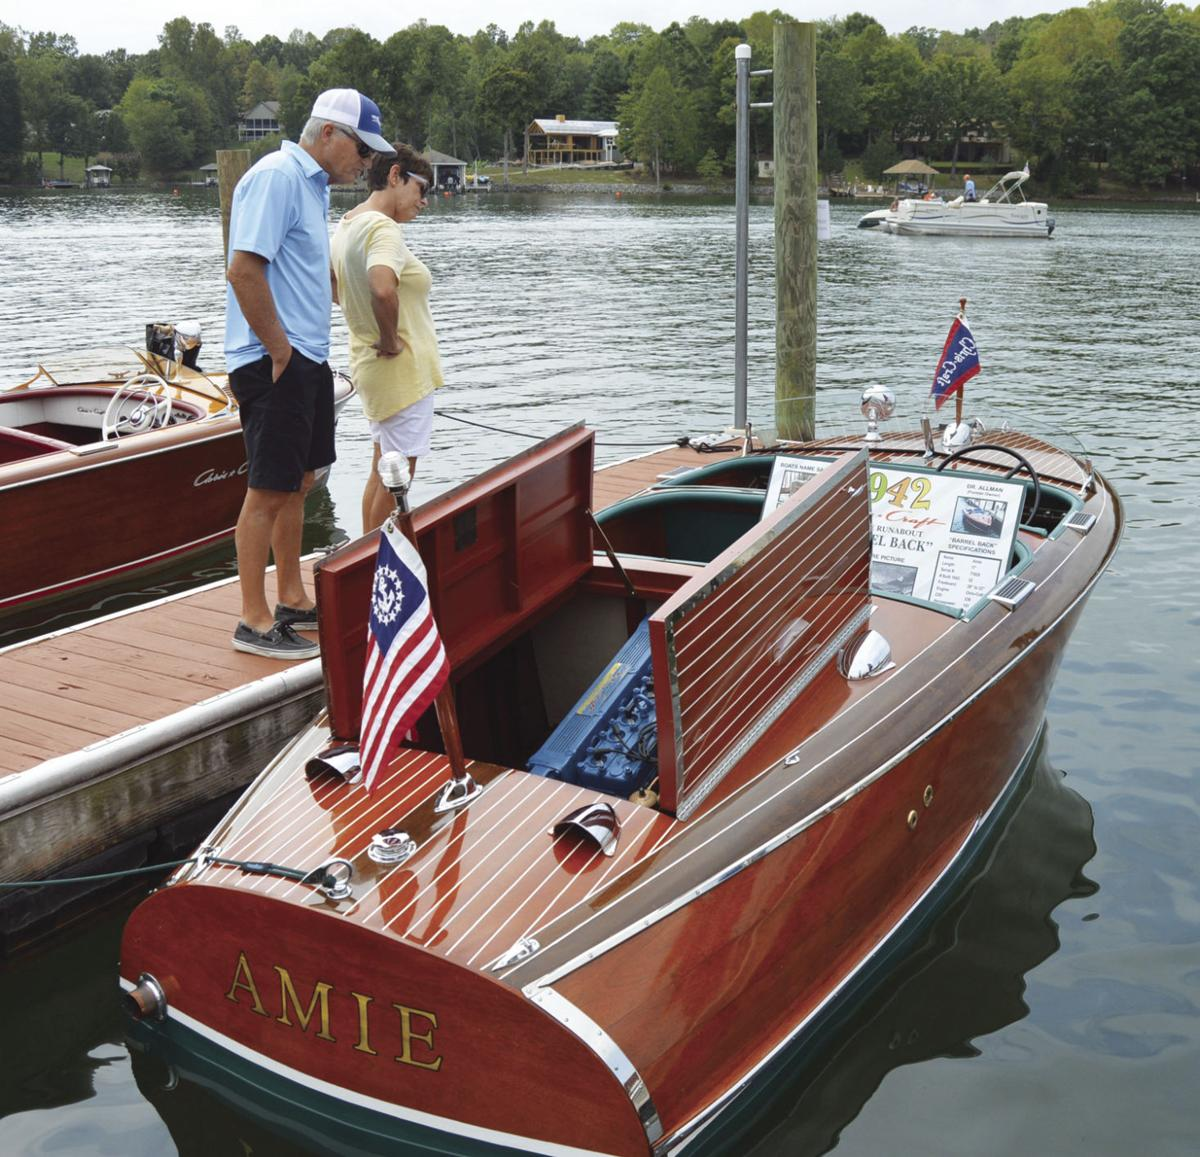 Antique and classic boats hit the waves